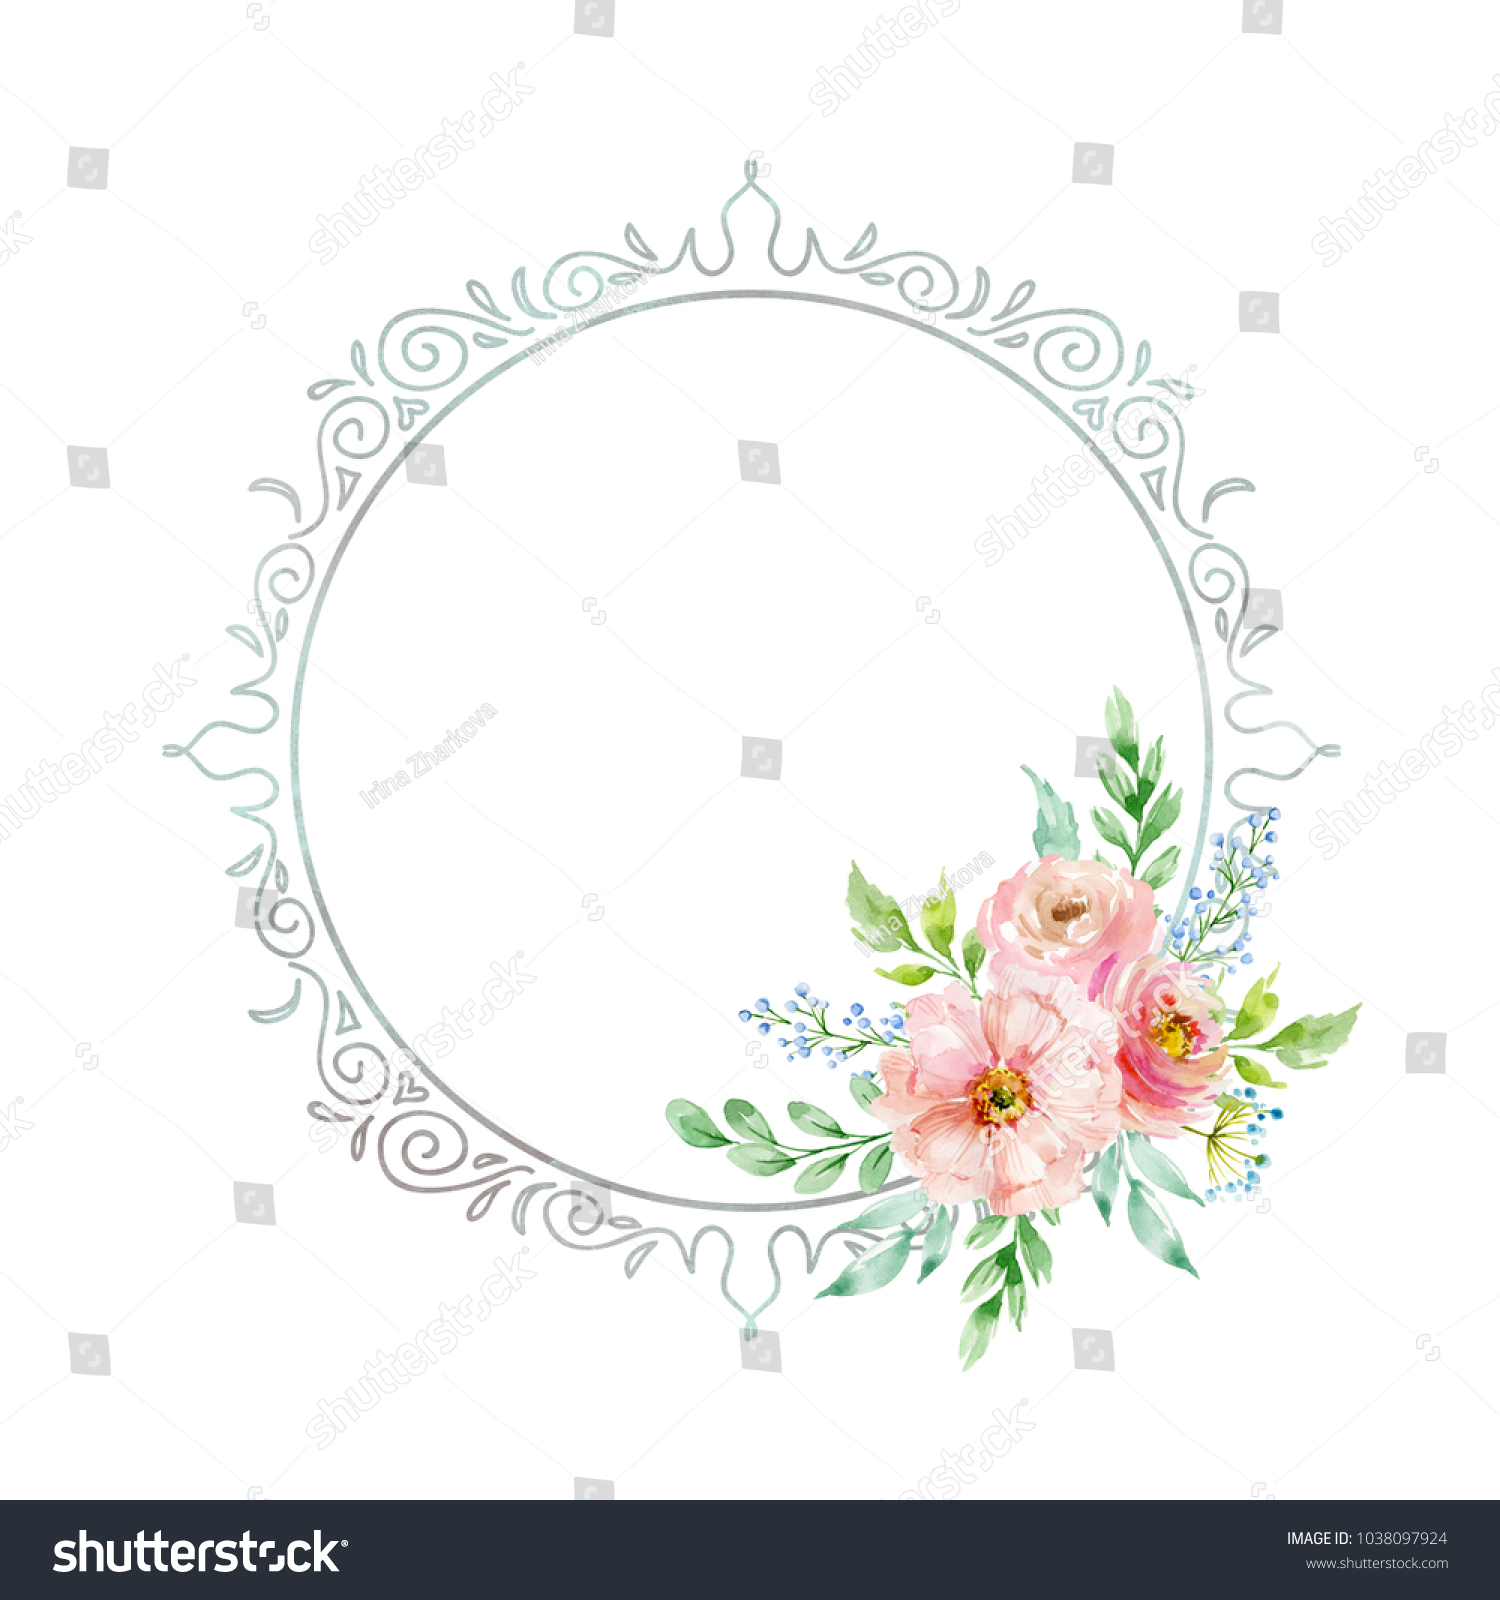 colorful frame border design. watercolor composition flowers pastel colors frame stock illustration 1038097924 - shutterstock colorful border design